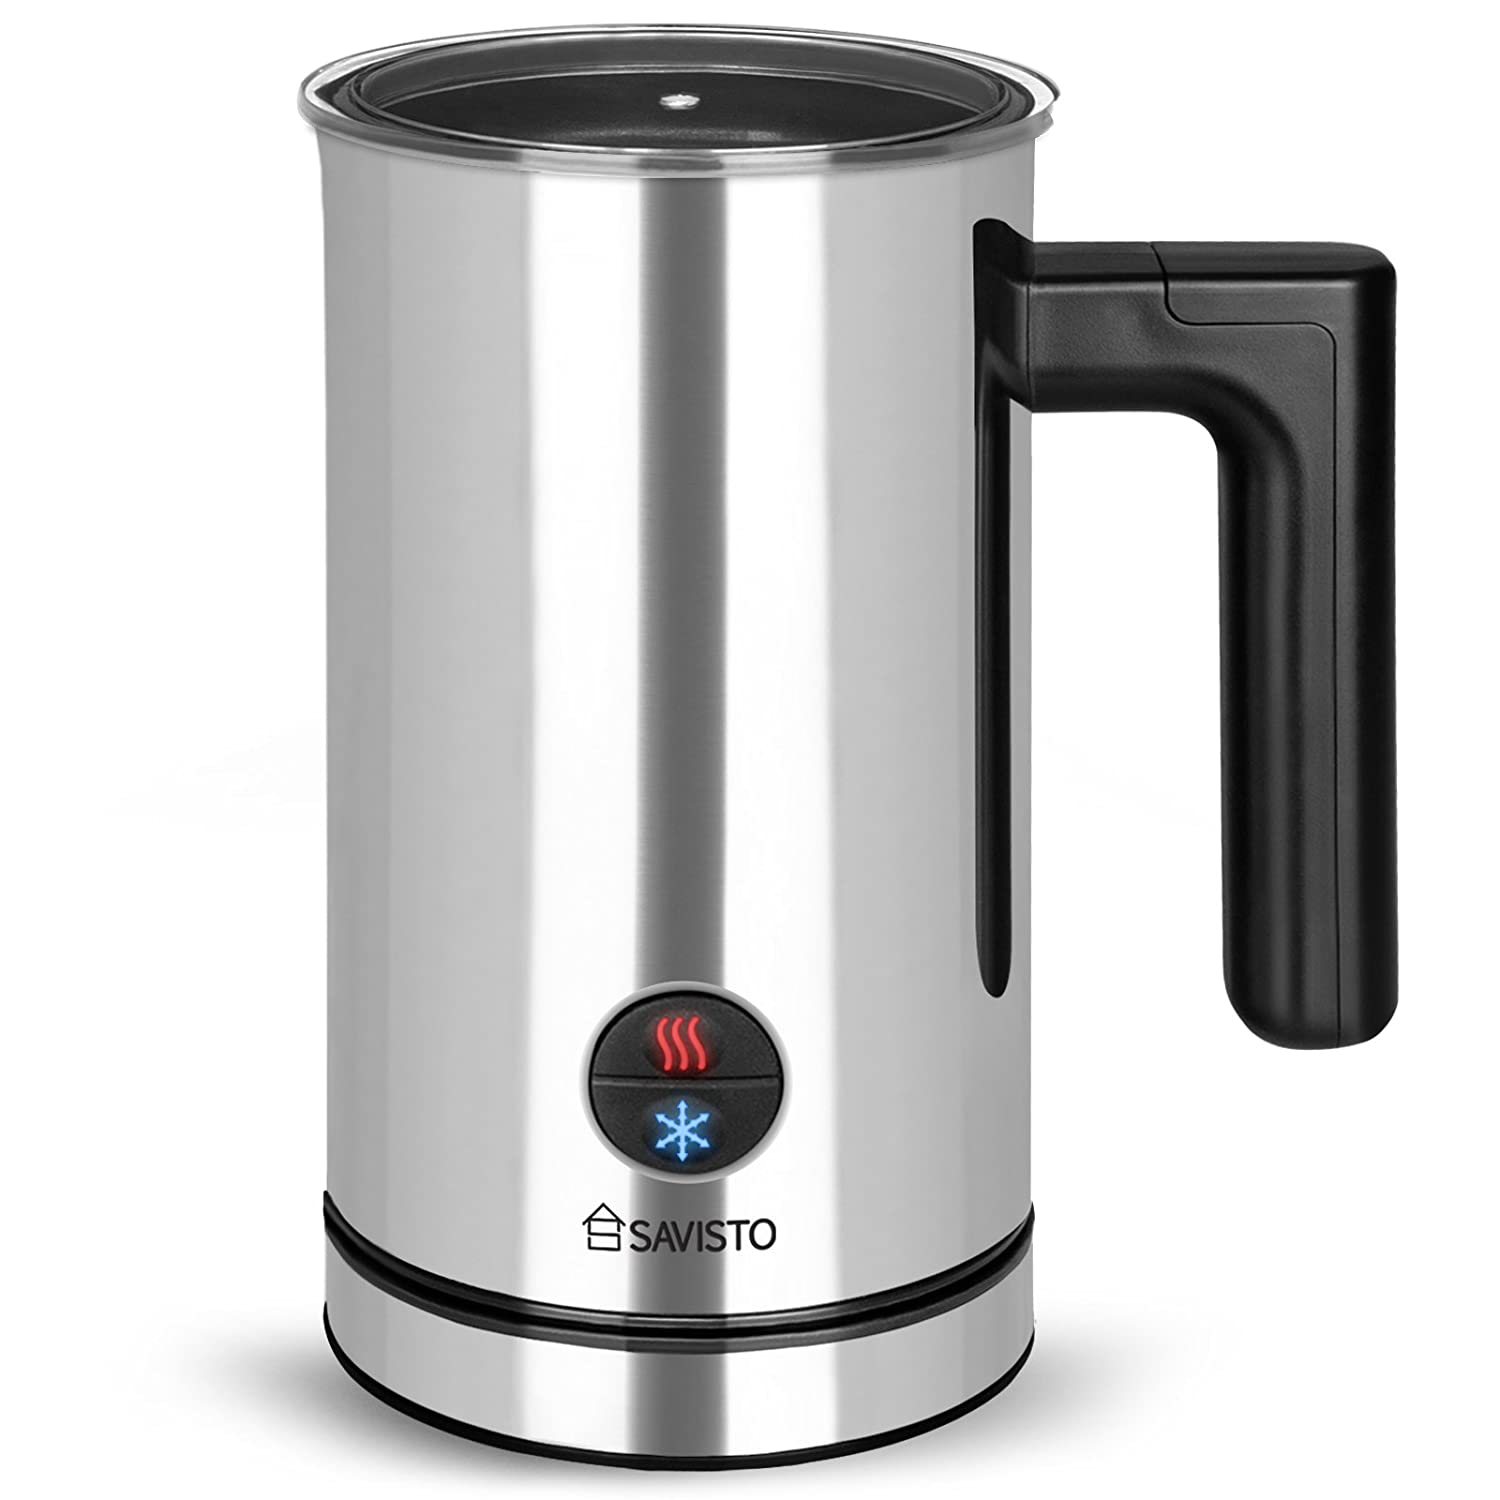 Savisto Electric Milk Frother Combined Milk Steamer Milk Heater Milk Frothing Jug Non Stick Foamer With Fill Level Indicator Ideal For Coffee